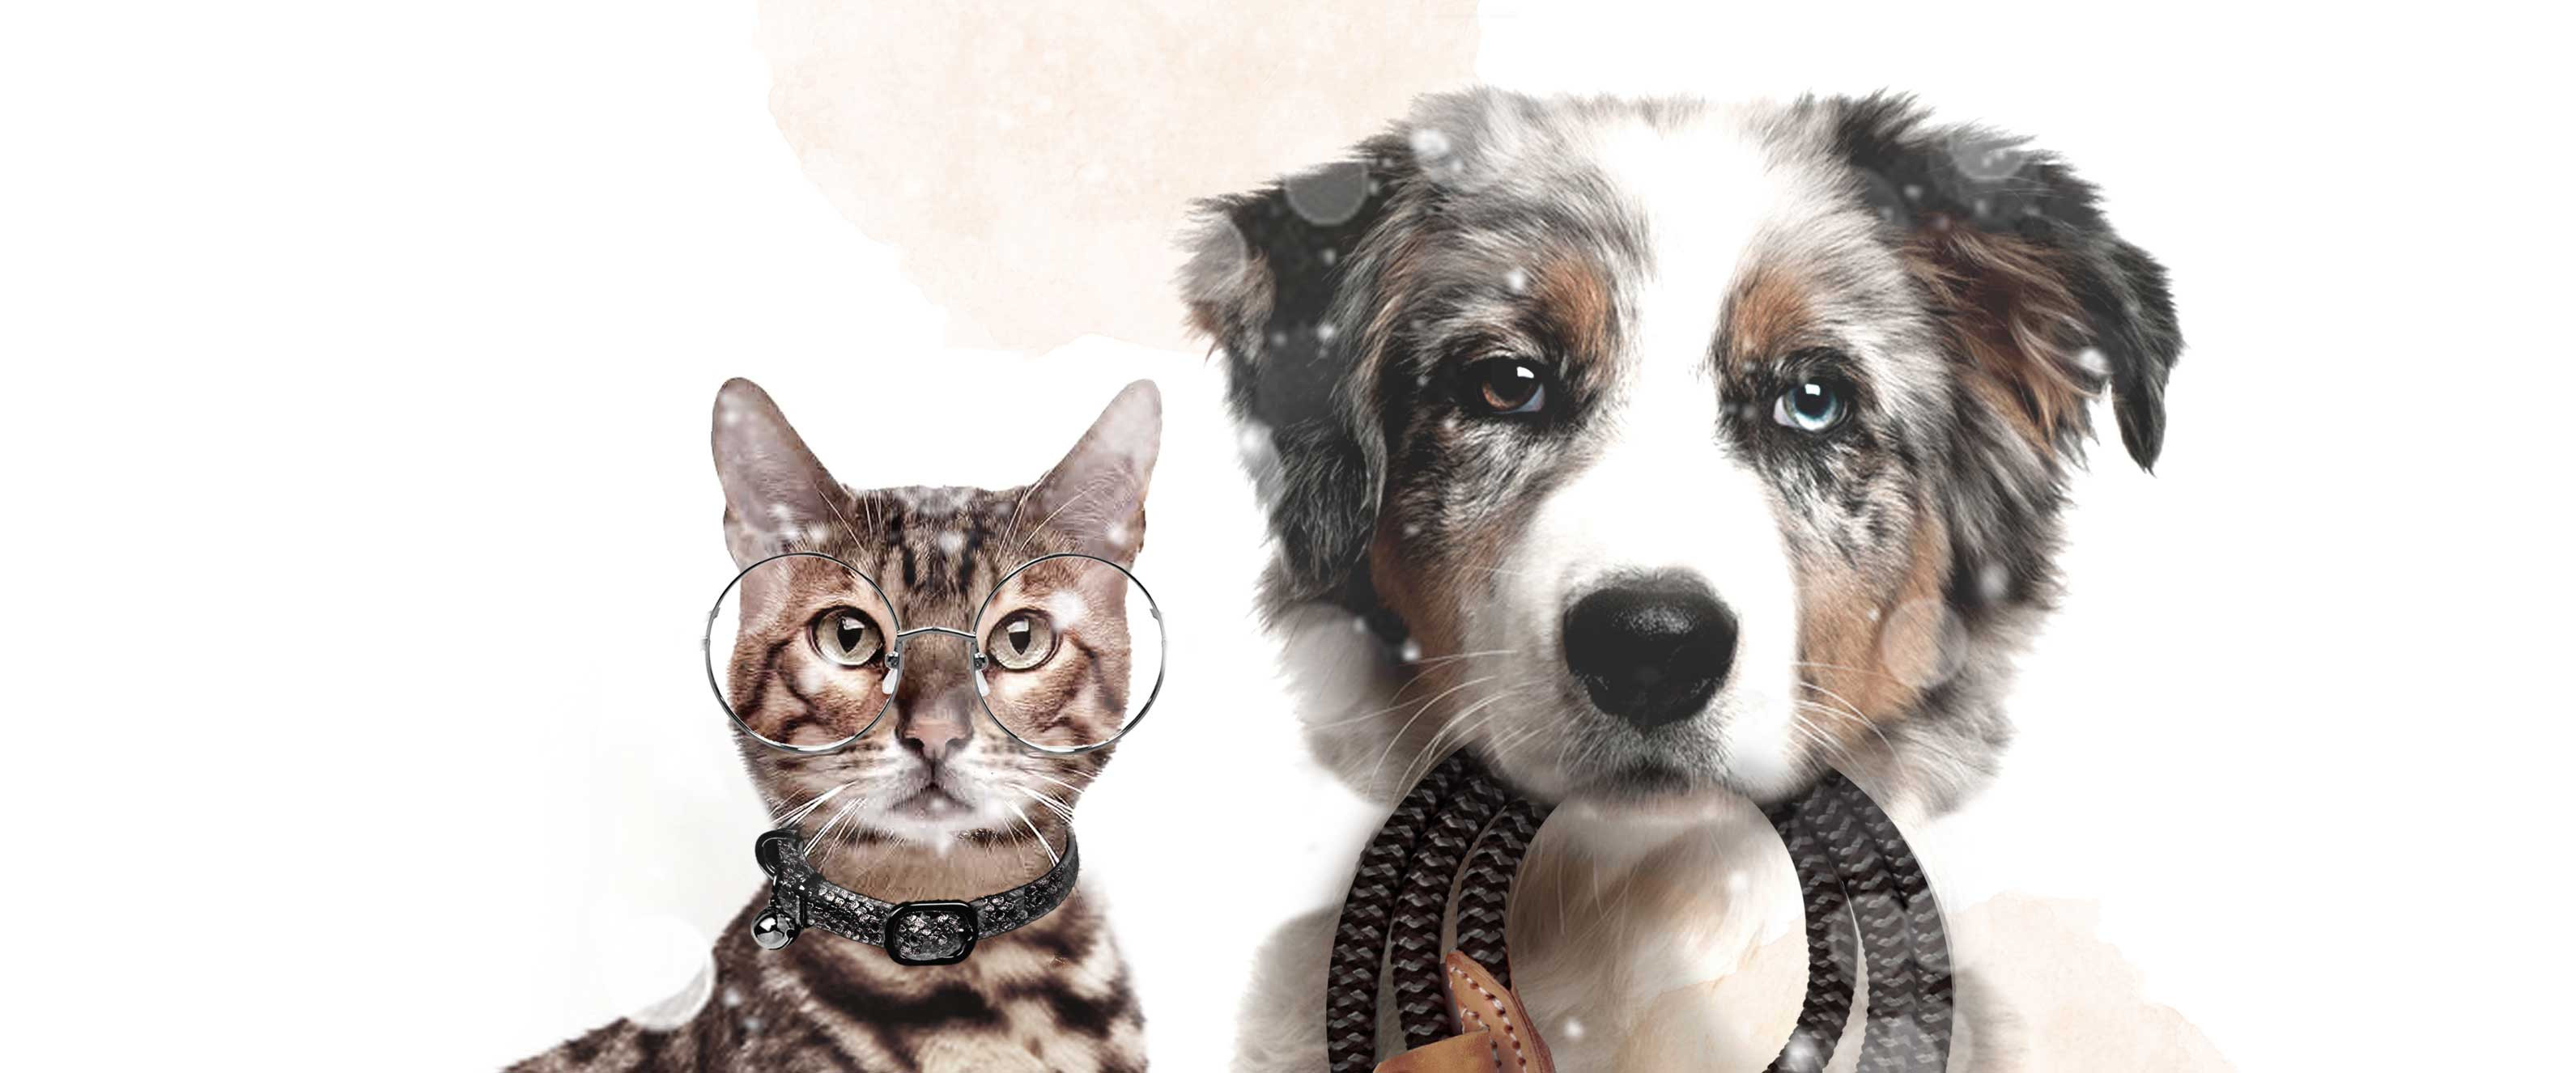 Milk & Pepper, Fashion And Accessories For Dogs & Cats -  Accessories Winter 2020